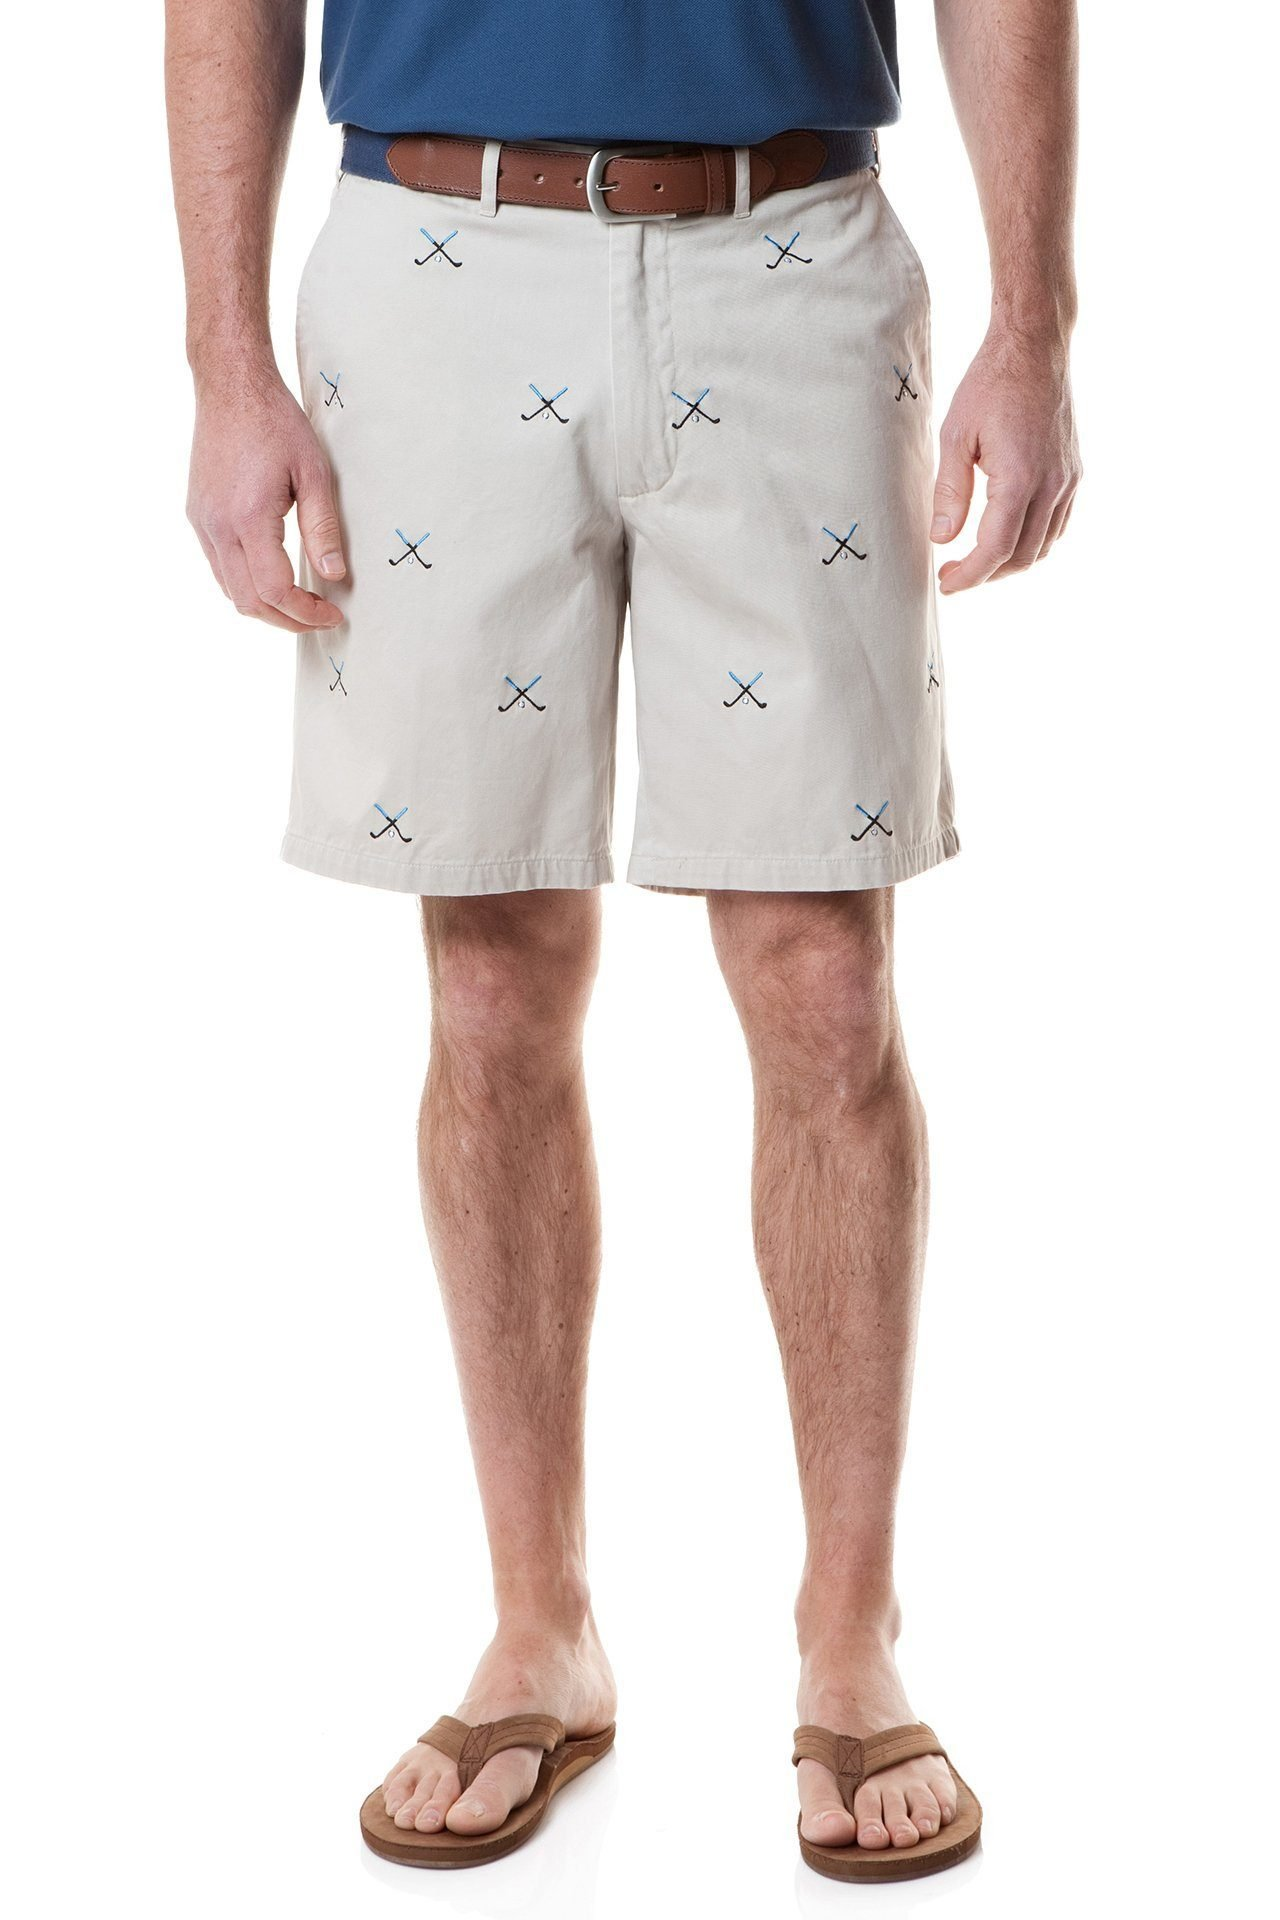 The Fine Swine Castaway Clothing Embroidered Critter Shorts (32, Khaki with Golf)